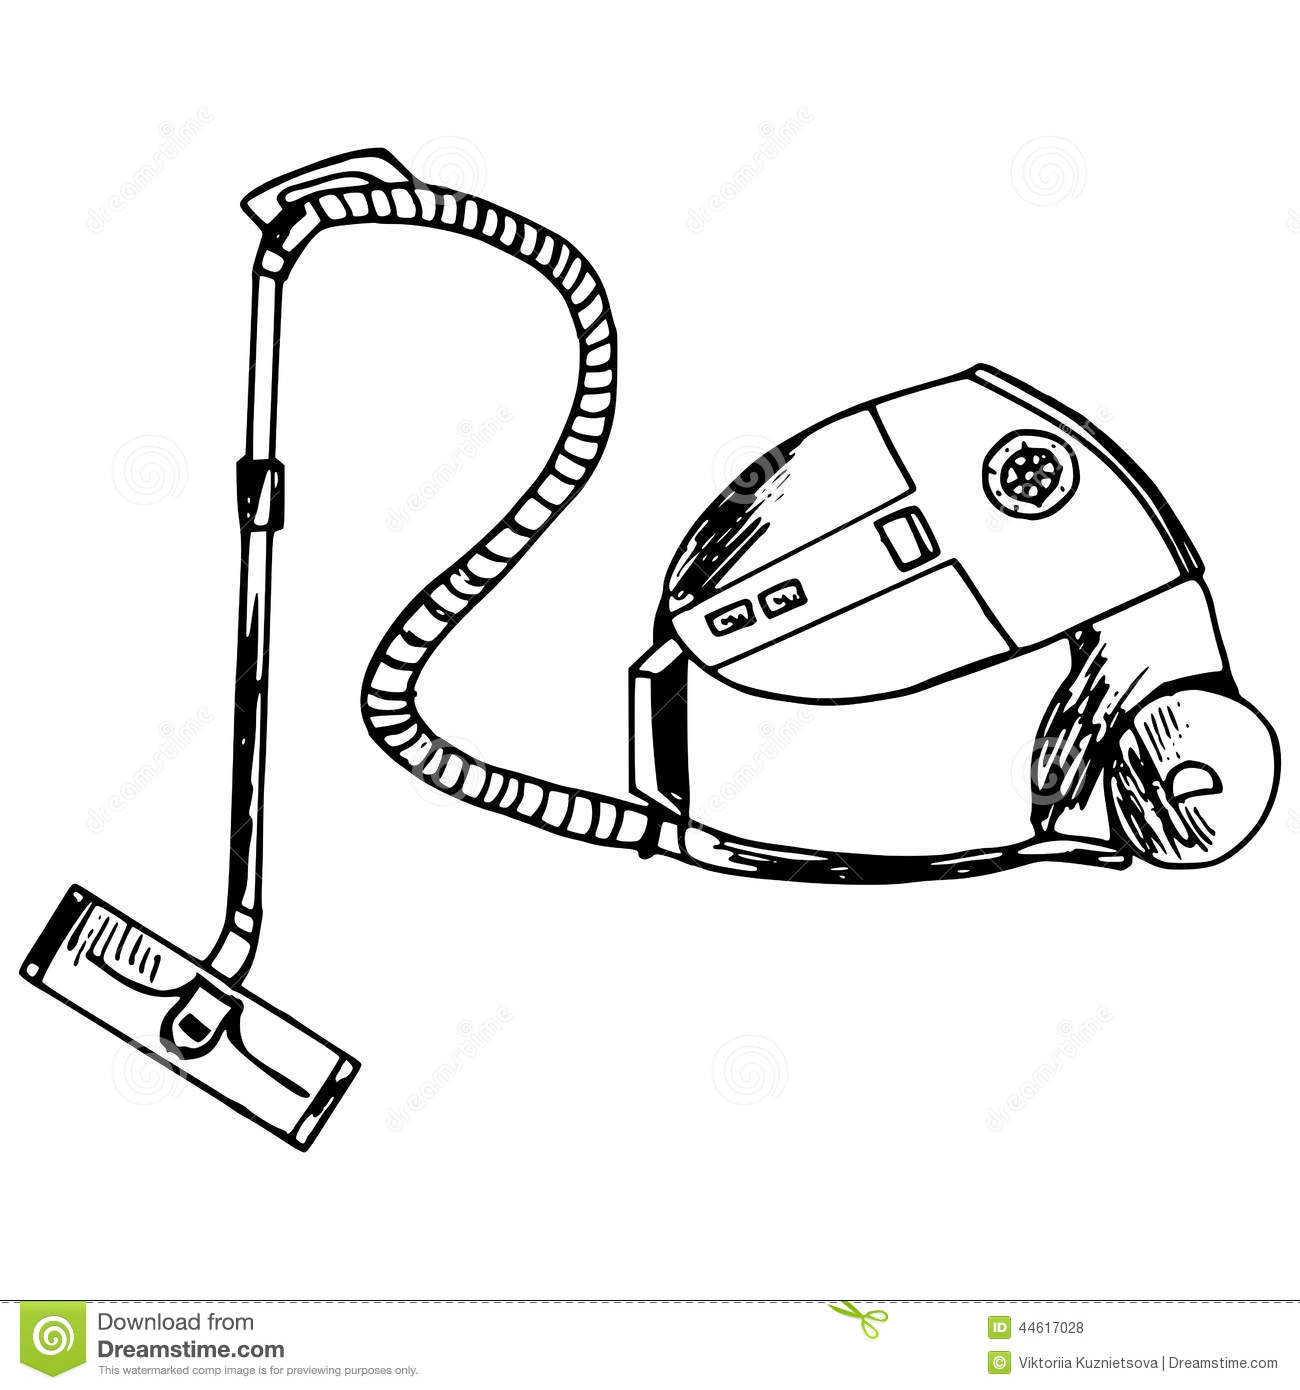 Vacuum cleaner clipart vacuum cleaner clip art - Vacuum Cleaner Stock Vector Image 44617028